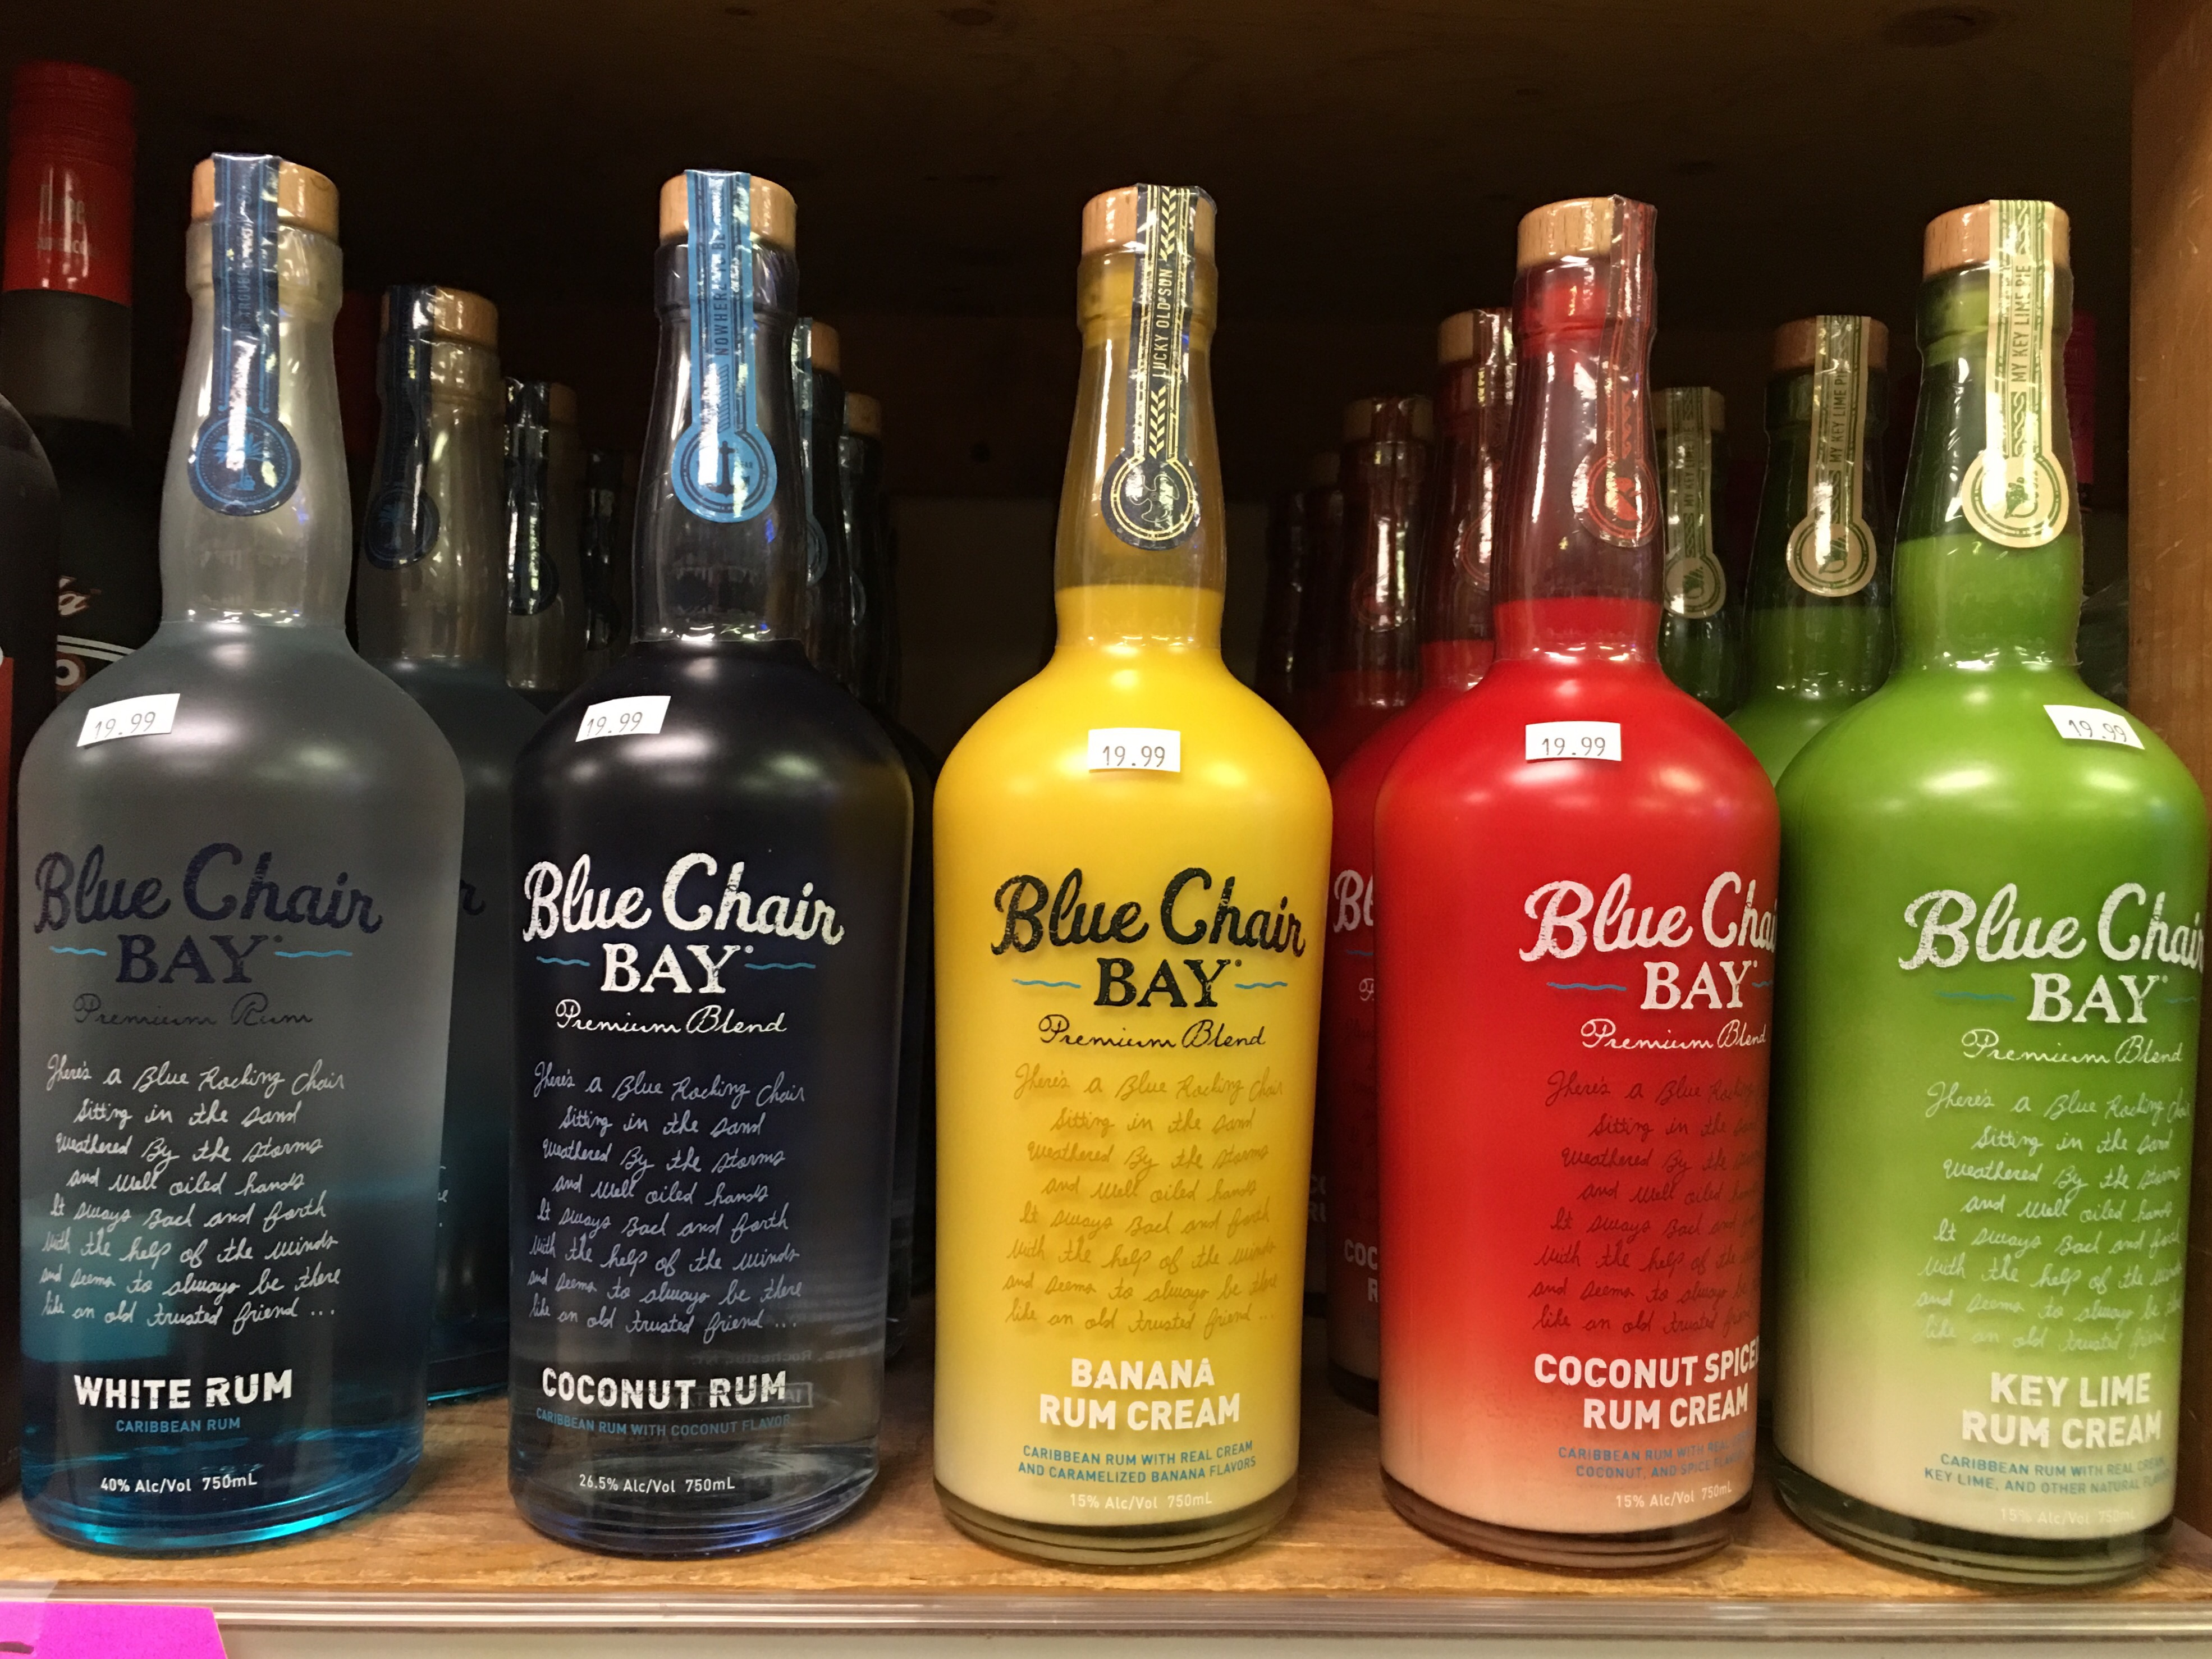 Kenny Chesney Blue Chair Bay Rums & Kenny Chesney Blue Chair Bay Rums | Franklin Liquors